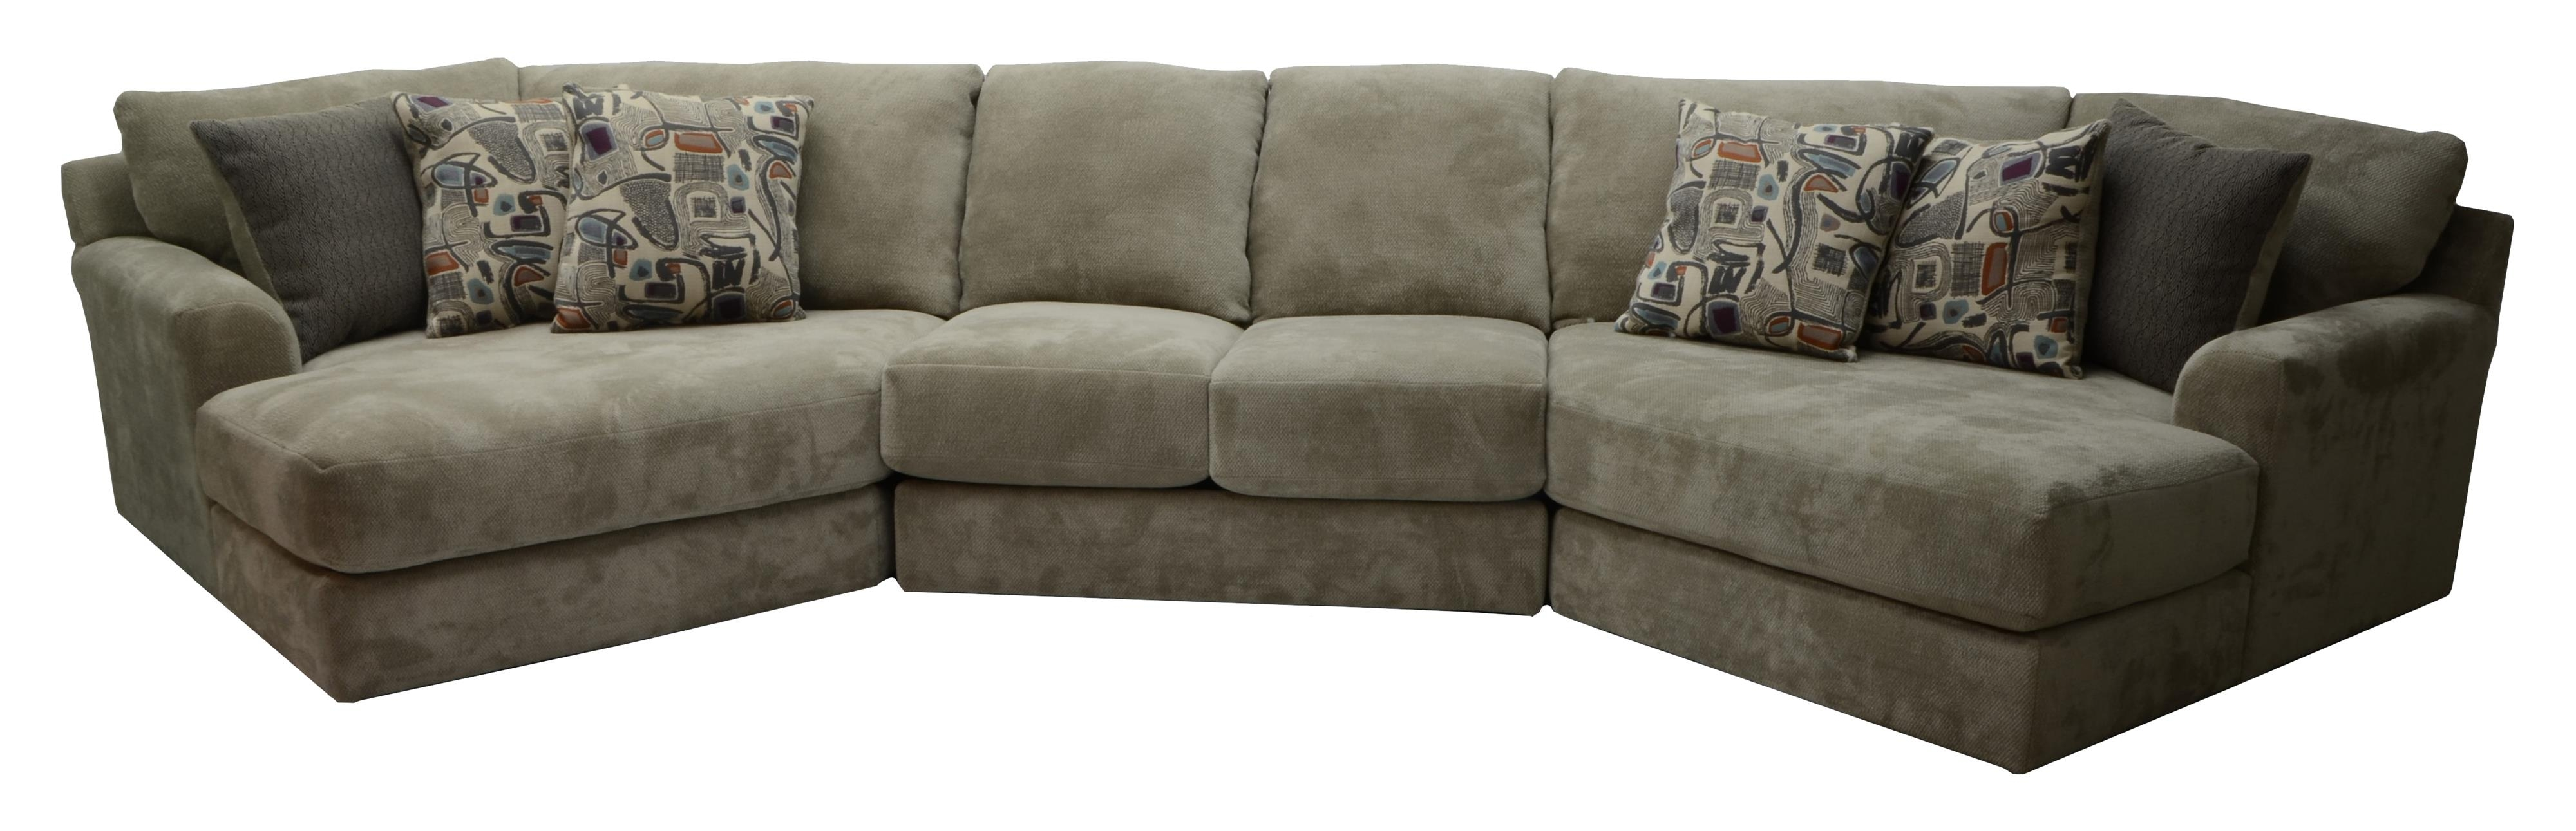 Jackson Furniture Malibu Four Seat Sectional Sofa Efo Furniture Throughout Four Seat Sofas (Image 14 of 15)